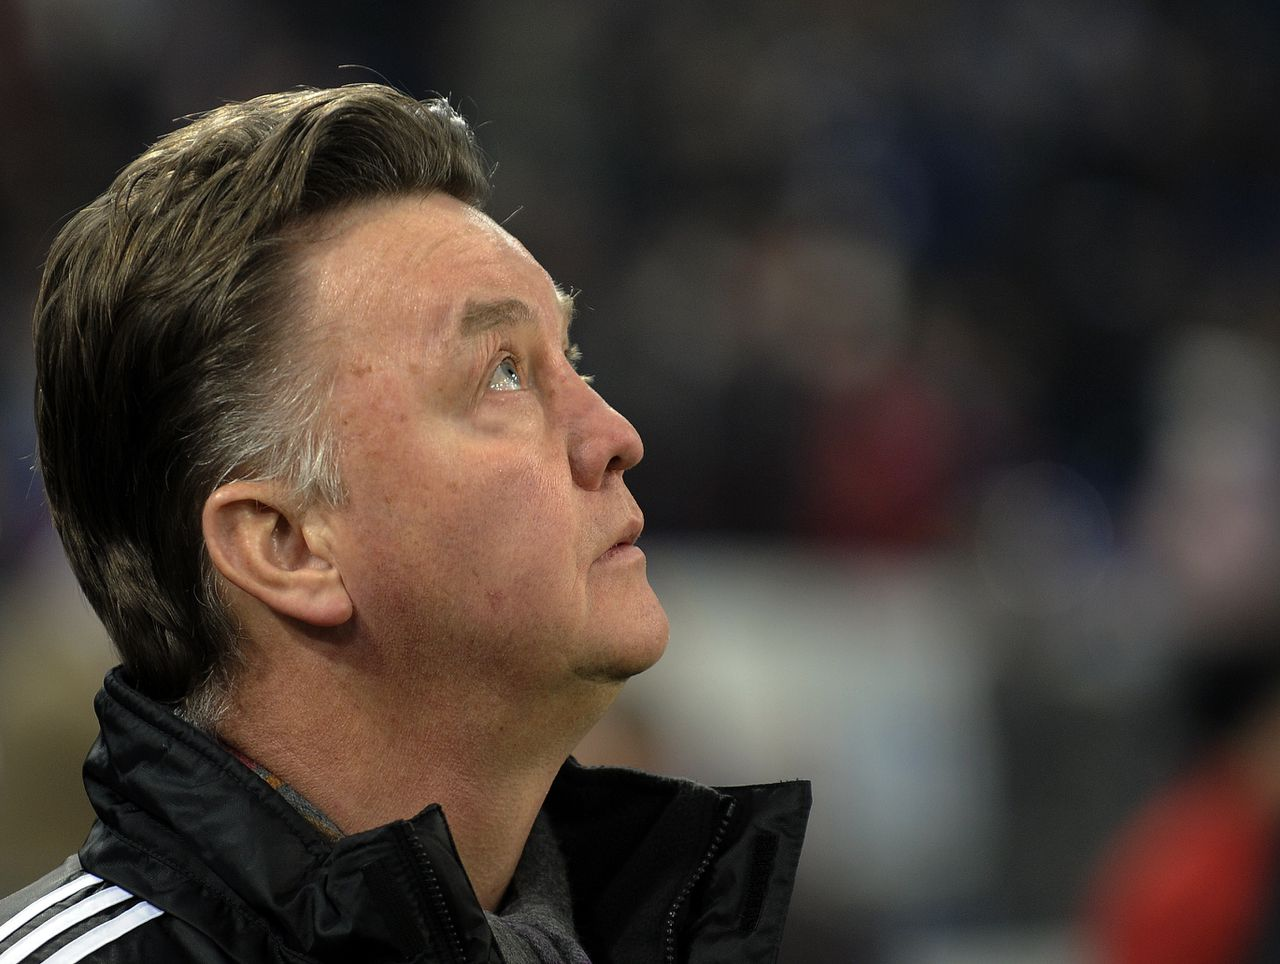 Bayern head coach Louis van Gaal of the Netherlands watches up prior the German first division Bundesliga soccer match between FC Schalke 04 and Bayern Munich in Gelsenkirchen , Germany, Saturday, Dec.4, 2010. (AP Photo/Martin Meissner) ** NO MOBILE USE UNTIL 2 HOURS AFTER THE MATCH, WEBSITE USERS ARE OBLIGED TO COMPLY WITH DFL-RESTRICTIONS, SEE INSTRUCTIONS FOR DETAILS **